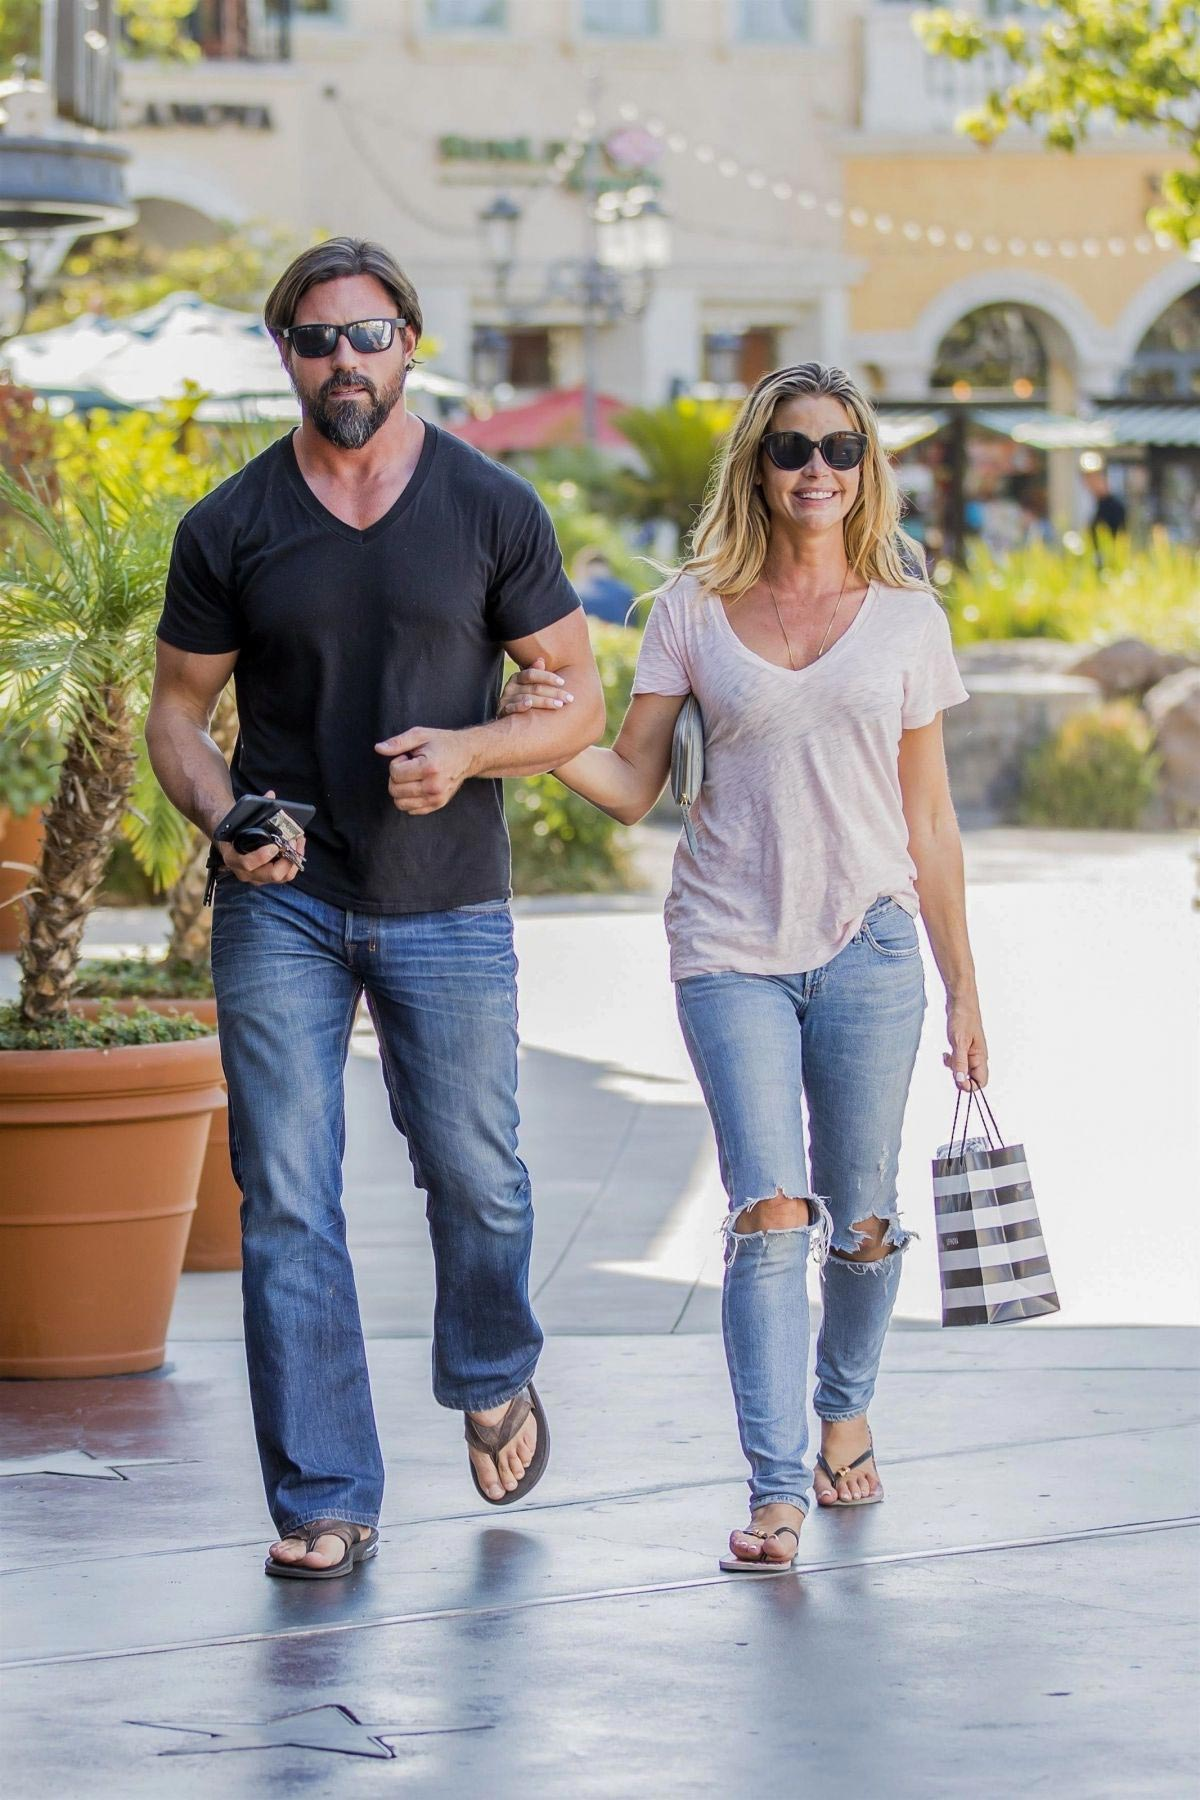 denise richards and aaron phypers out in calabasas 2018 08 14 04 - Denise Richards and Aaron Phypers Out in Calabasas 2018/08/14